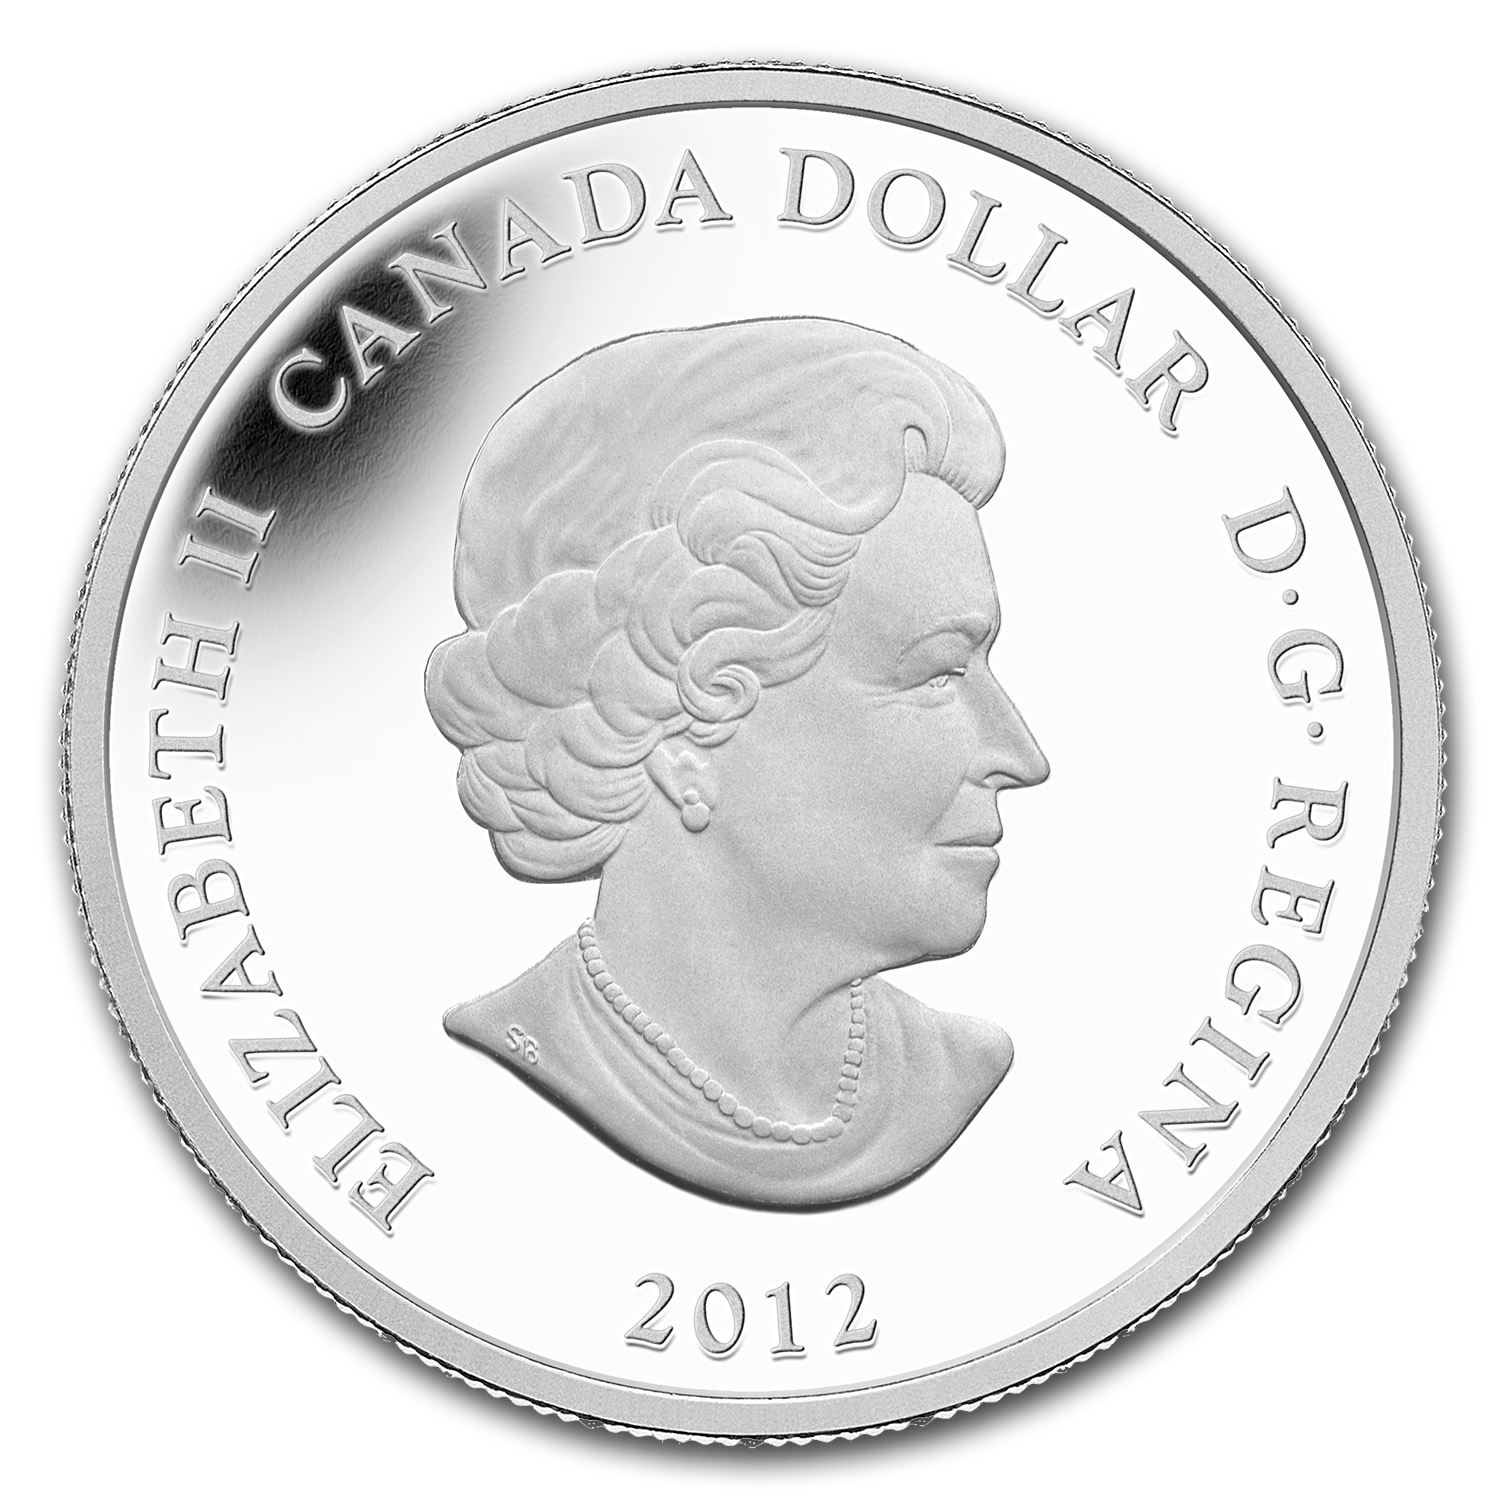 2012 1 oz Silver Canadian $1 Two Loons Artistic Loonie (Painted)